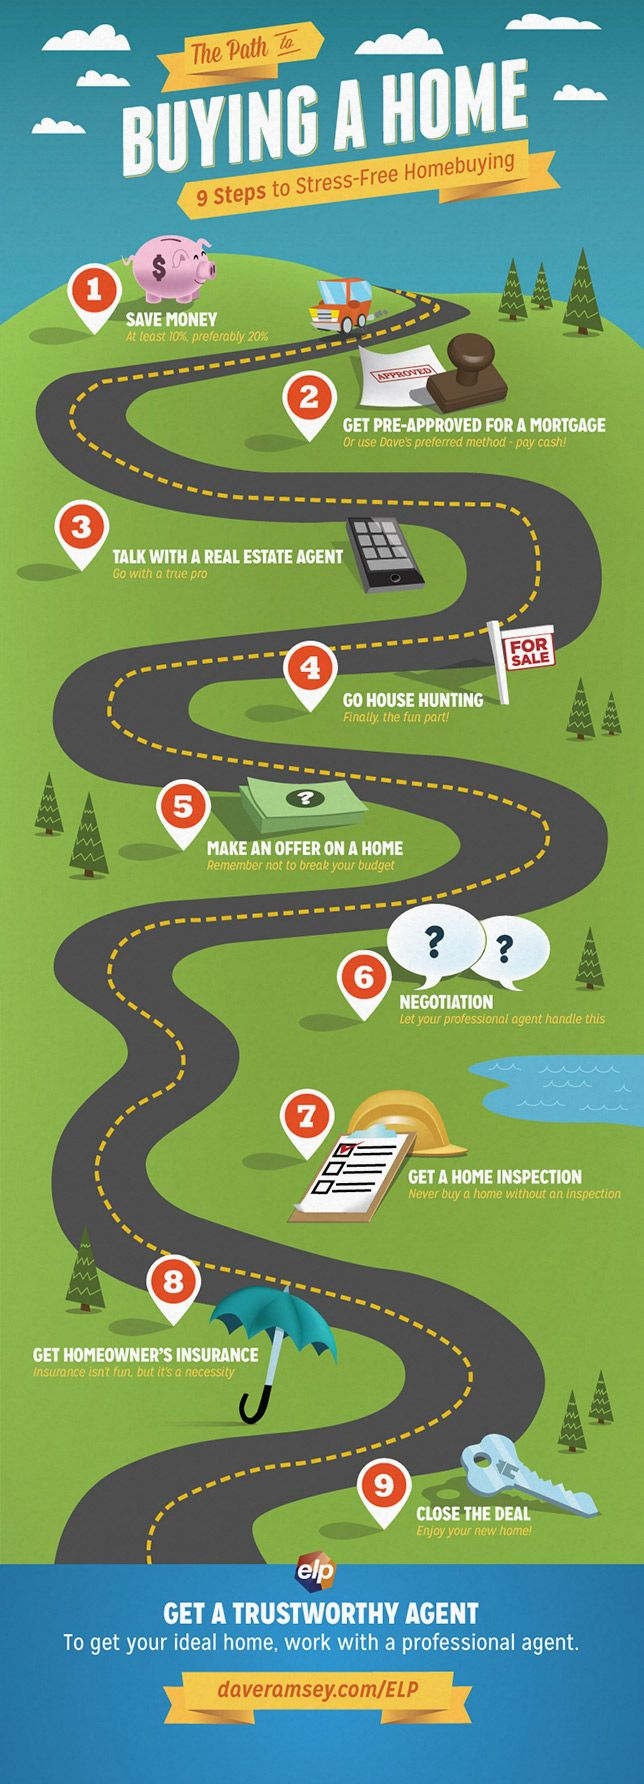 Best 25+ Home Buying Tips Ideas On Pinterest  Home Buying, House Hunting  Tips First Time And First Home Buyer